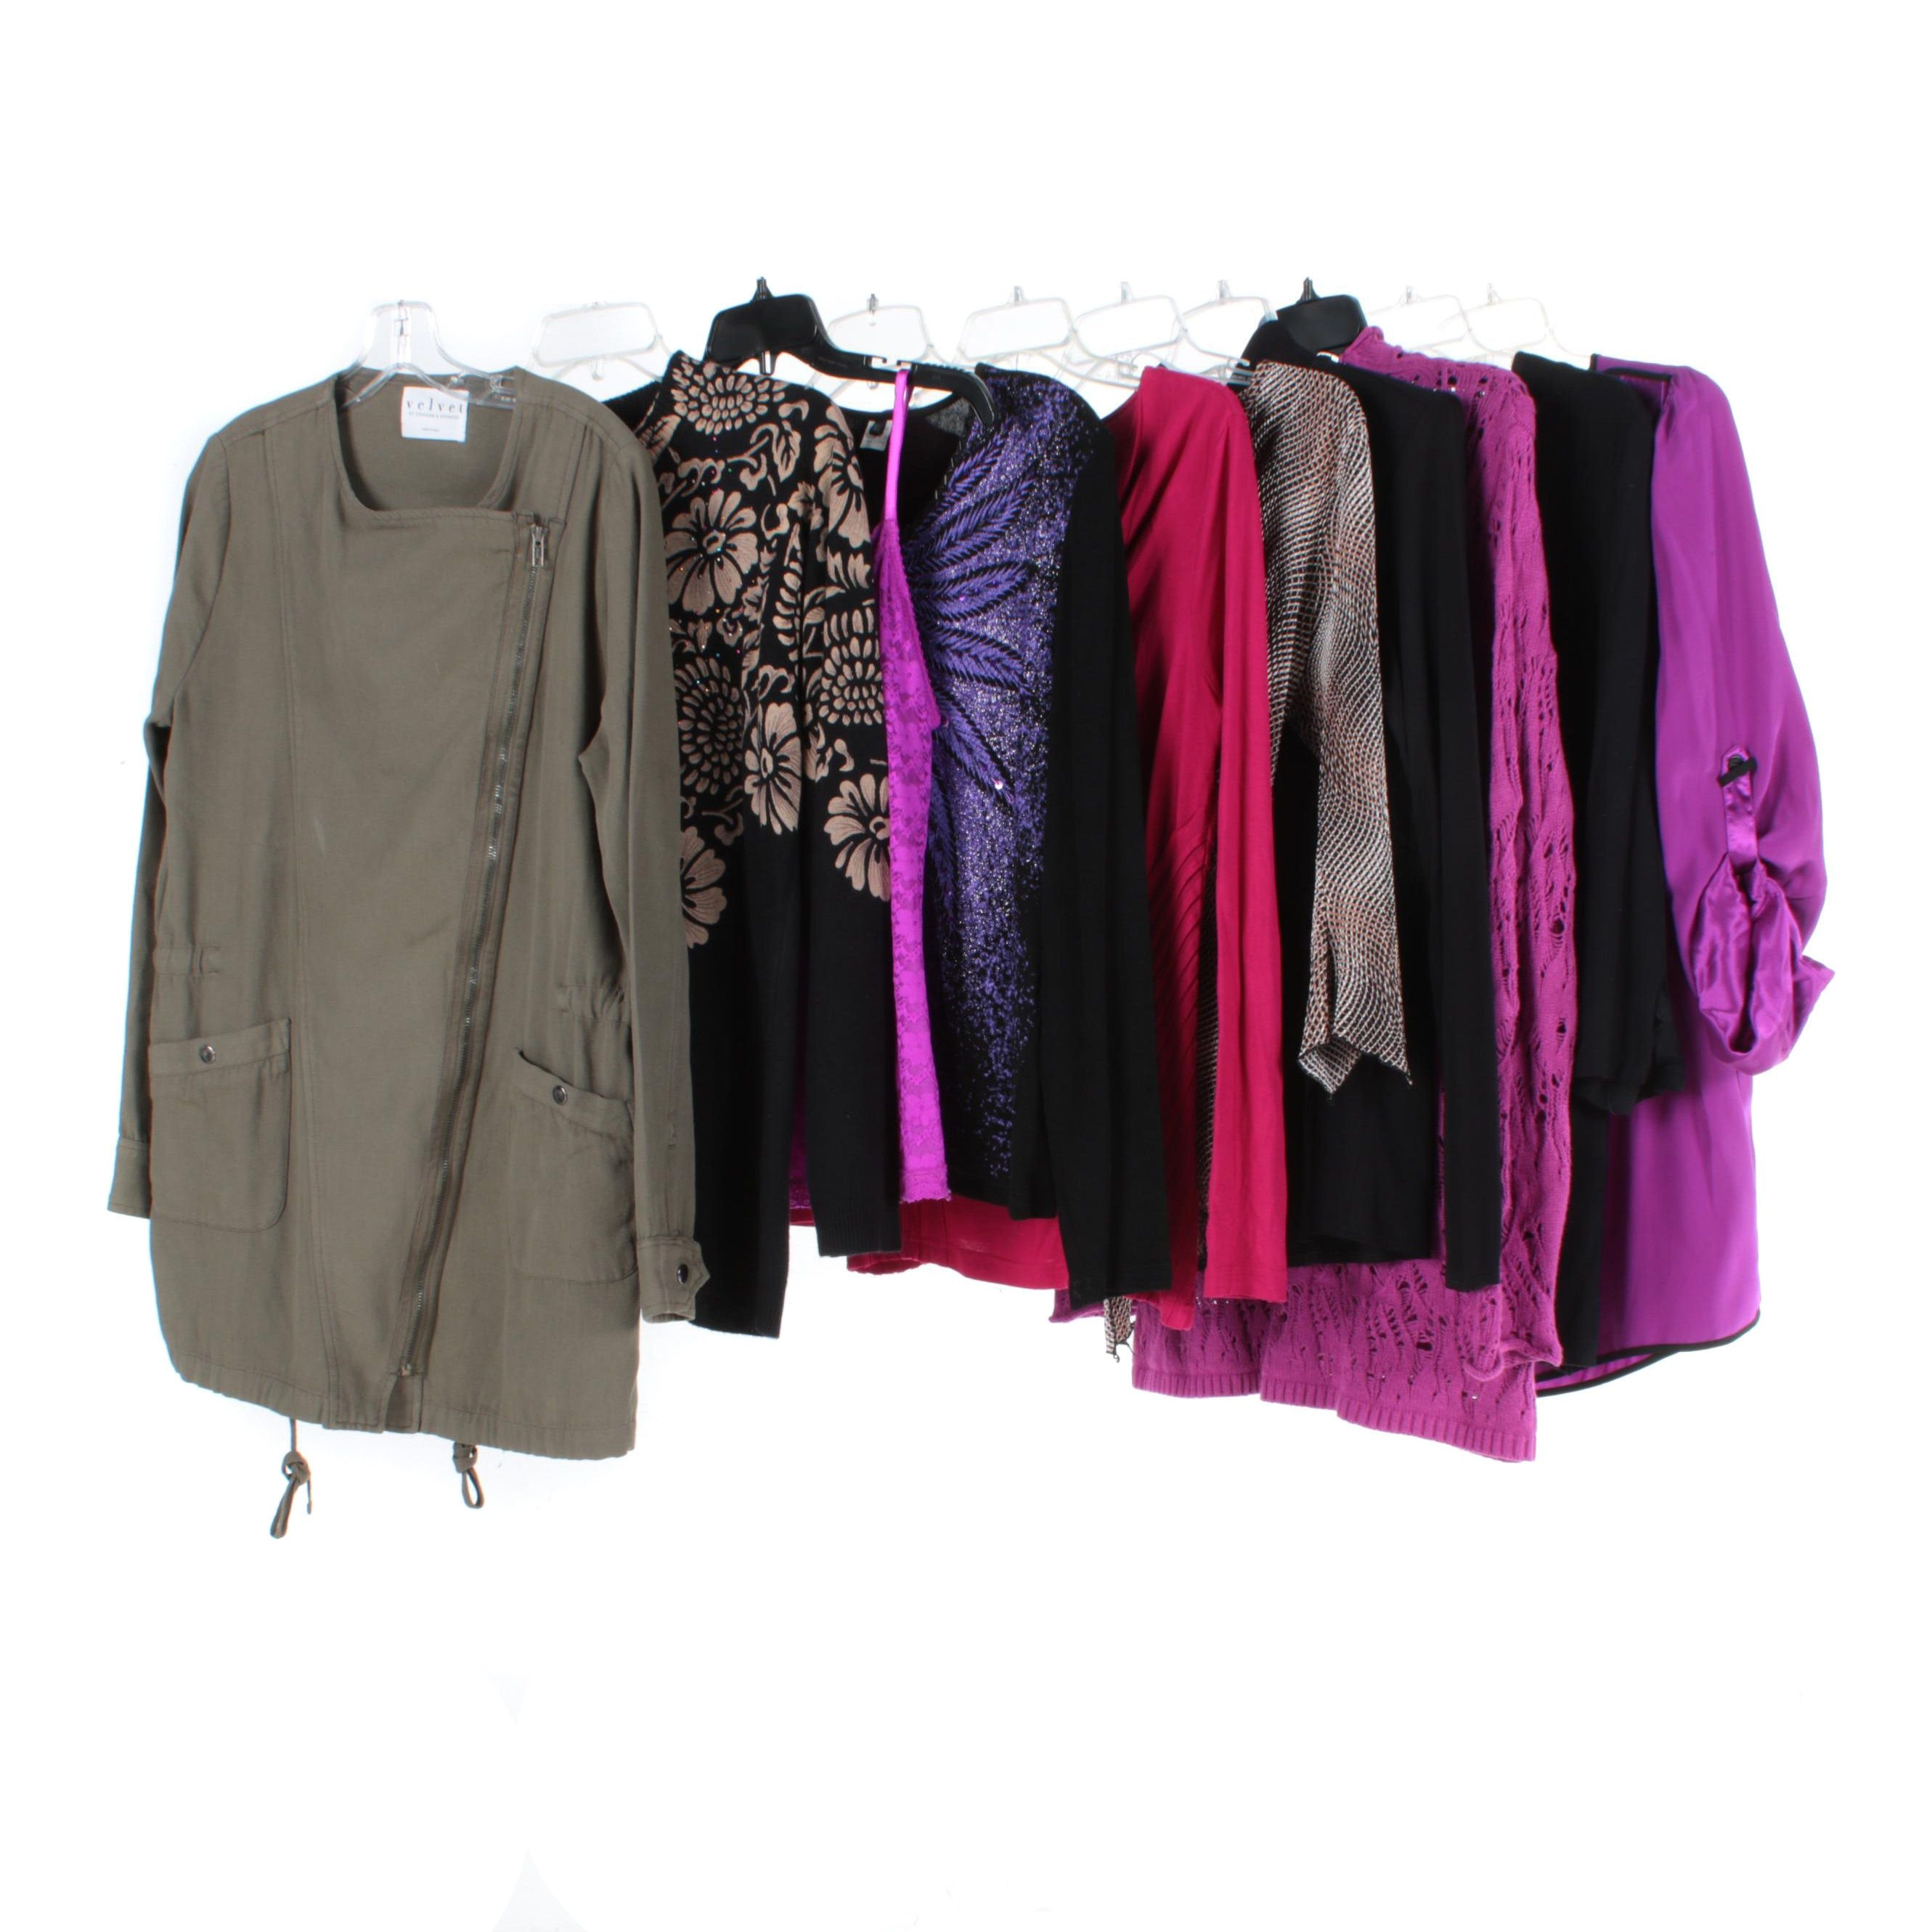 Women's Clothing Including Max Edition